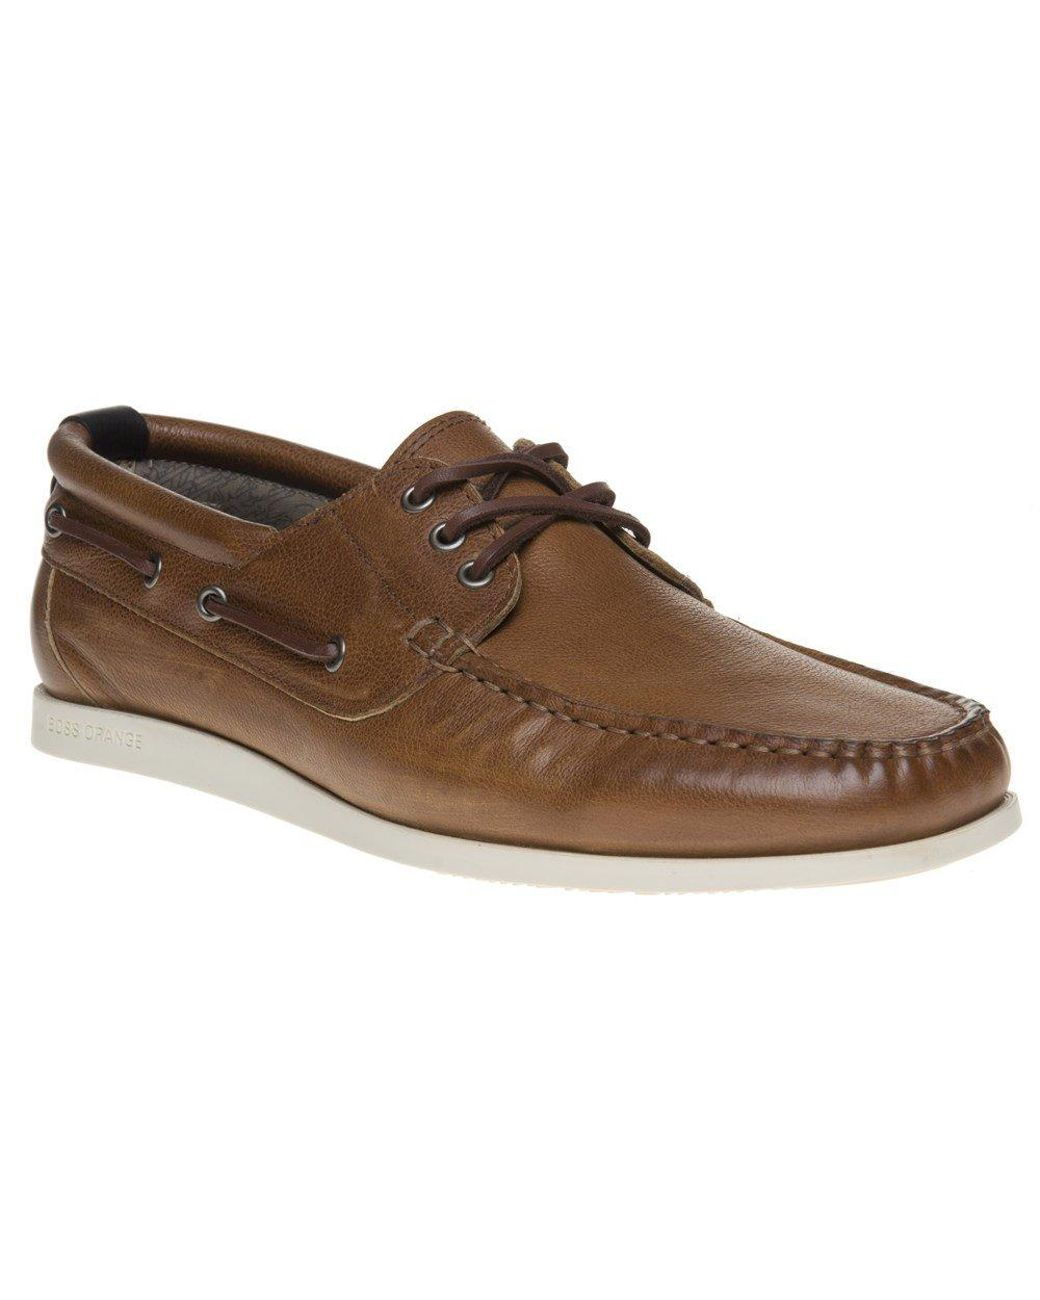 1a3fcaa26761 BOSS Orange Nydec Mocc Shoes in Brown for Men - Lyst